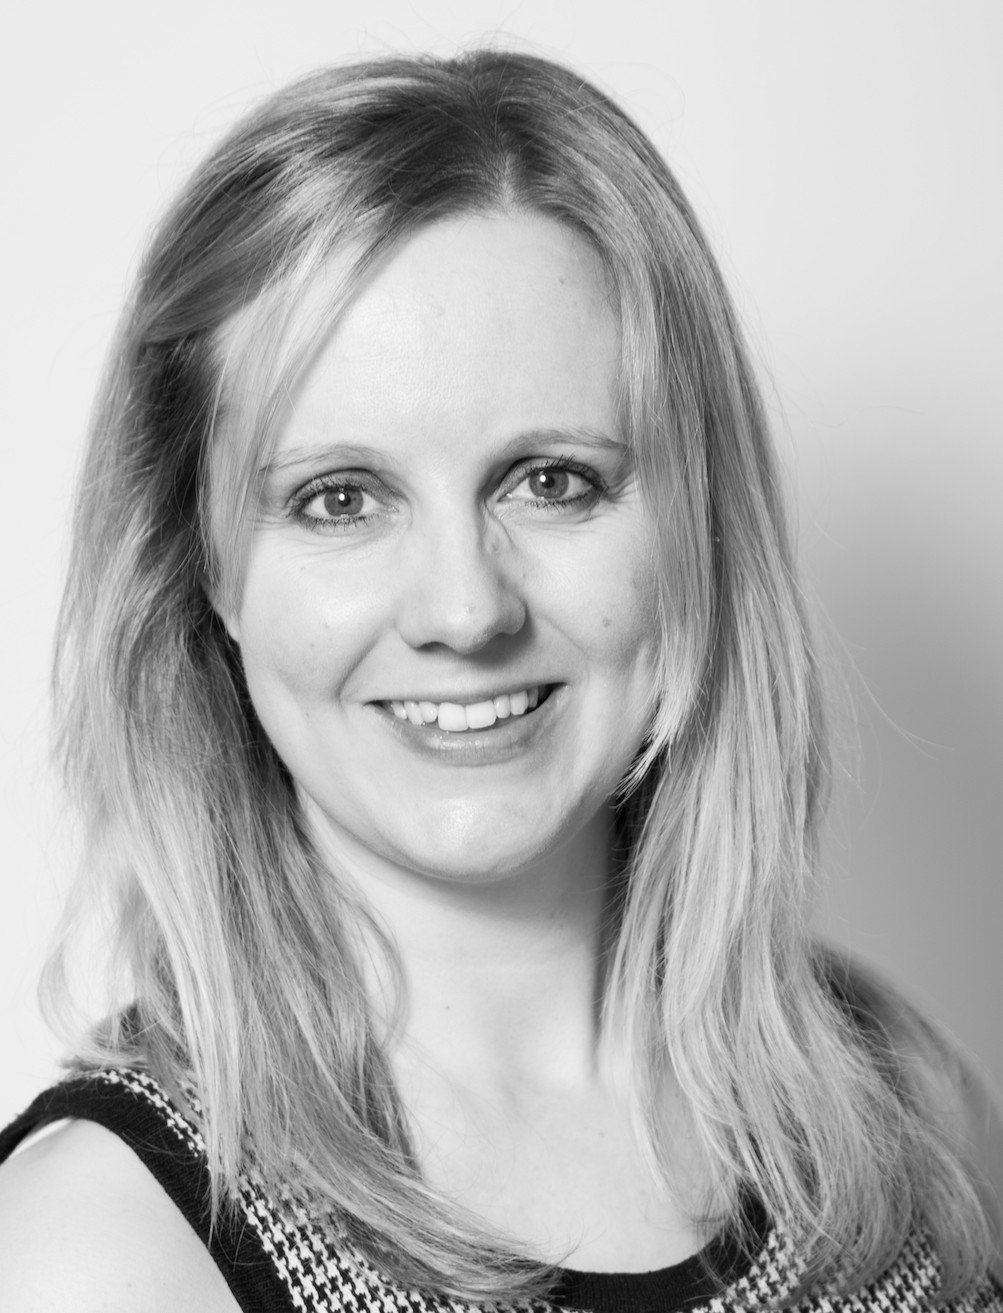 Helen Tonge, Co-Founder and Managing Director Title Role Productions